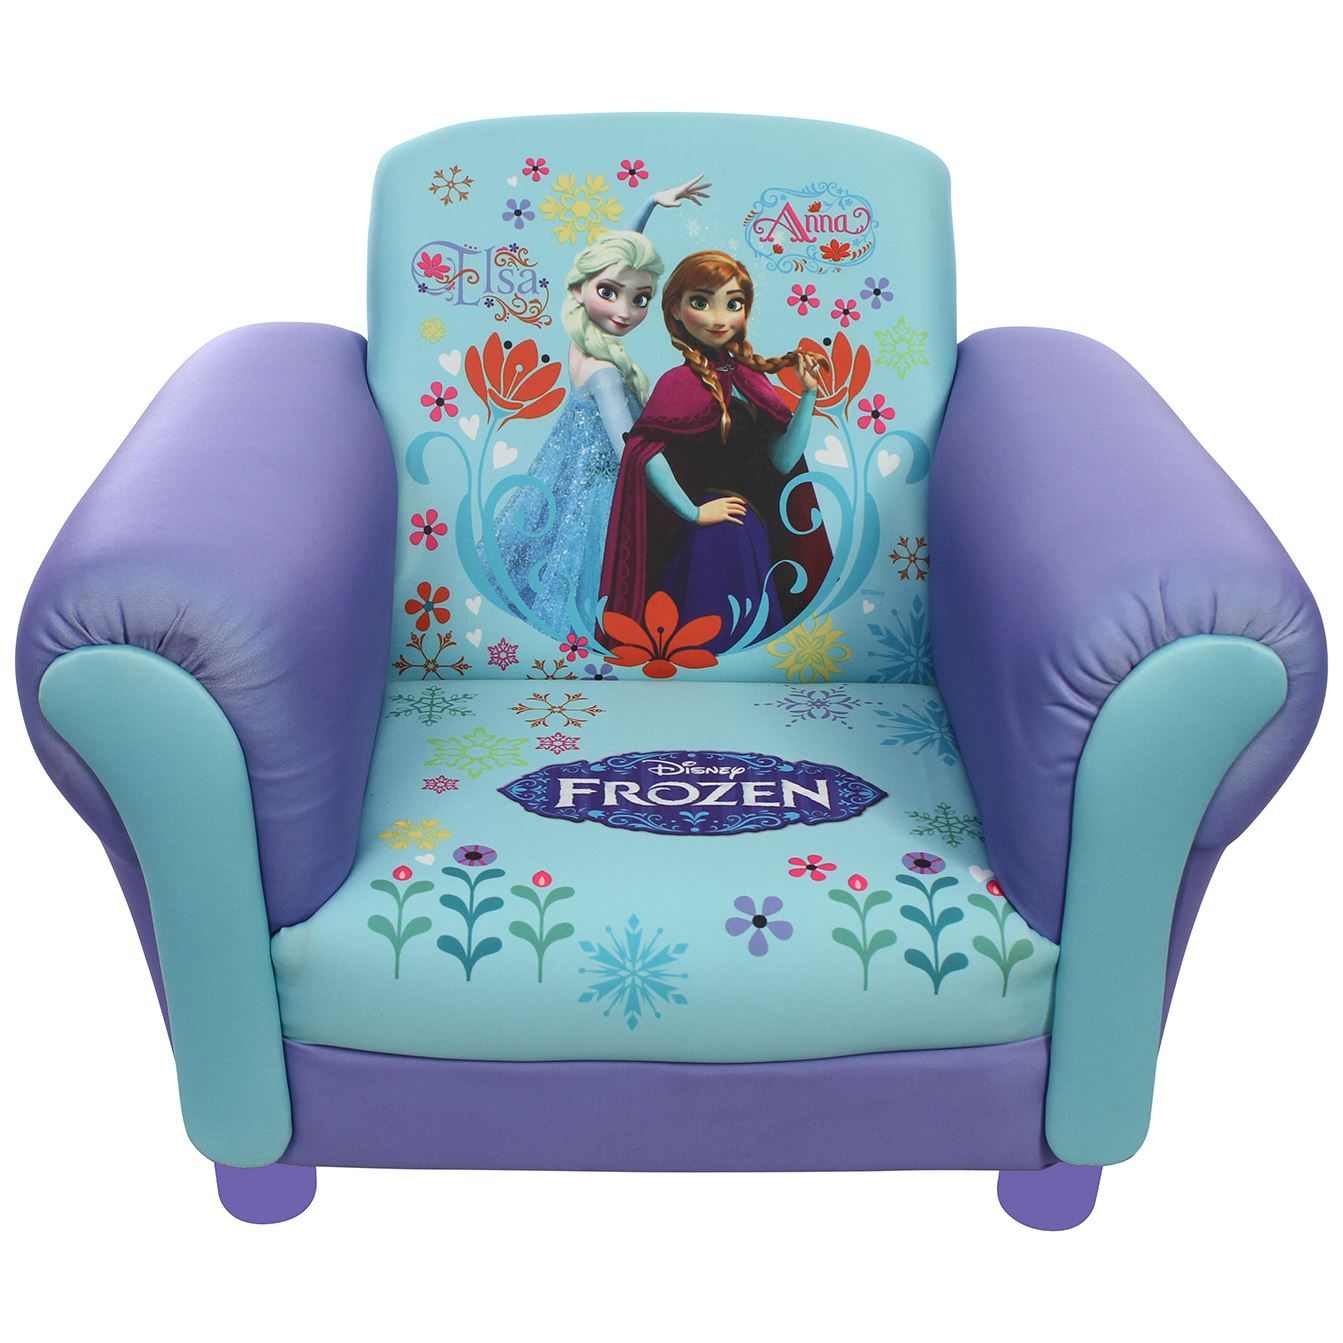 minnie mouse upholstered chair home goods covers childrens disney kids frozen anna & elsa mickey cartoon | ebay